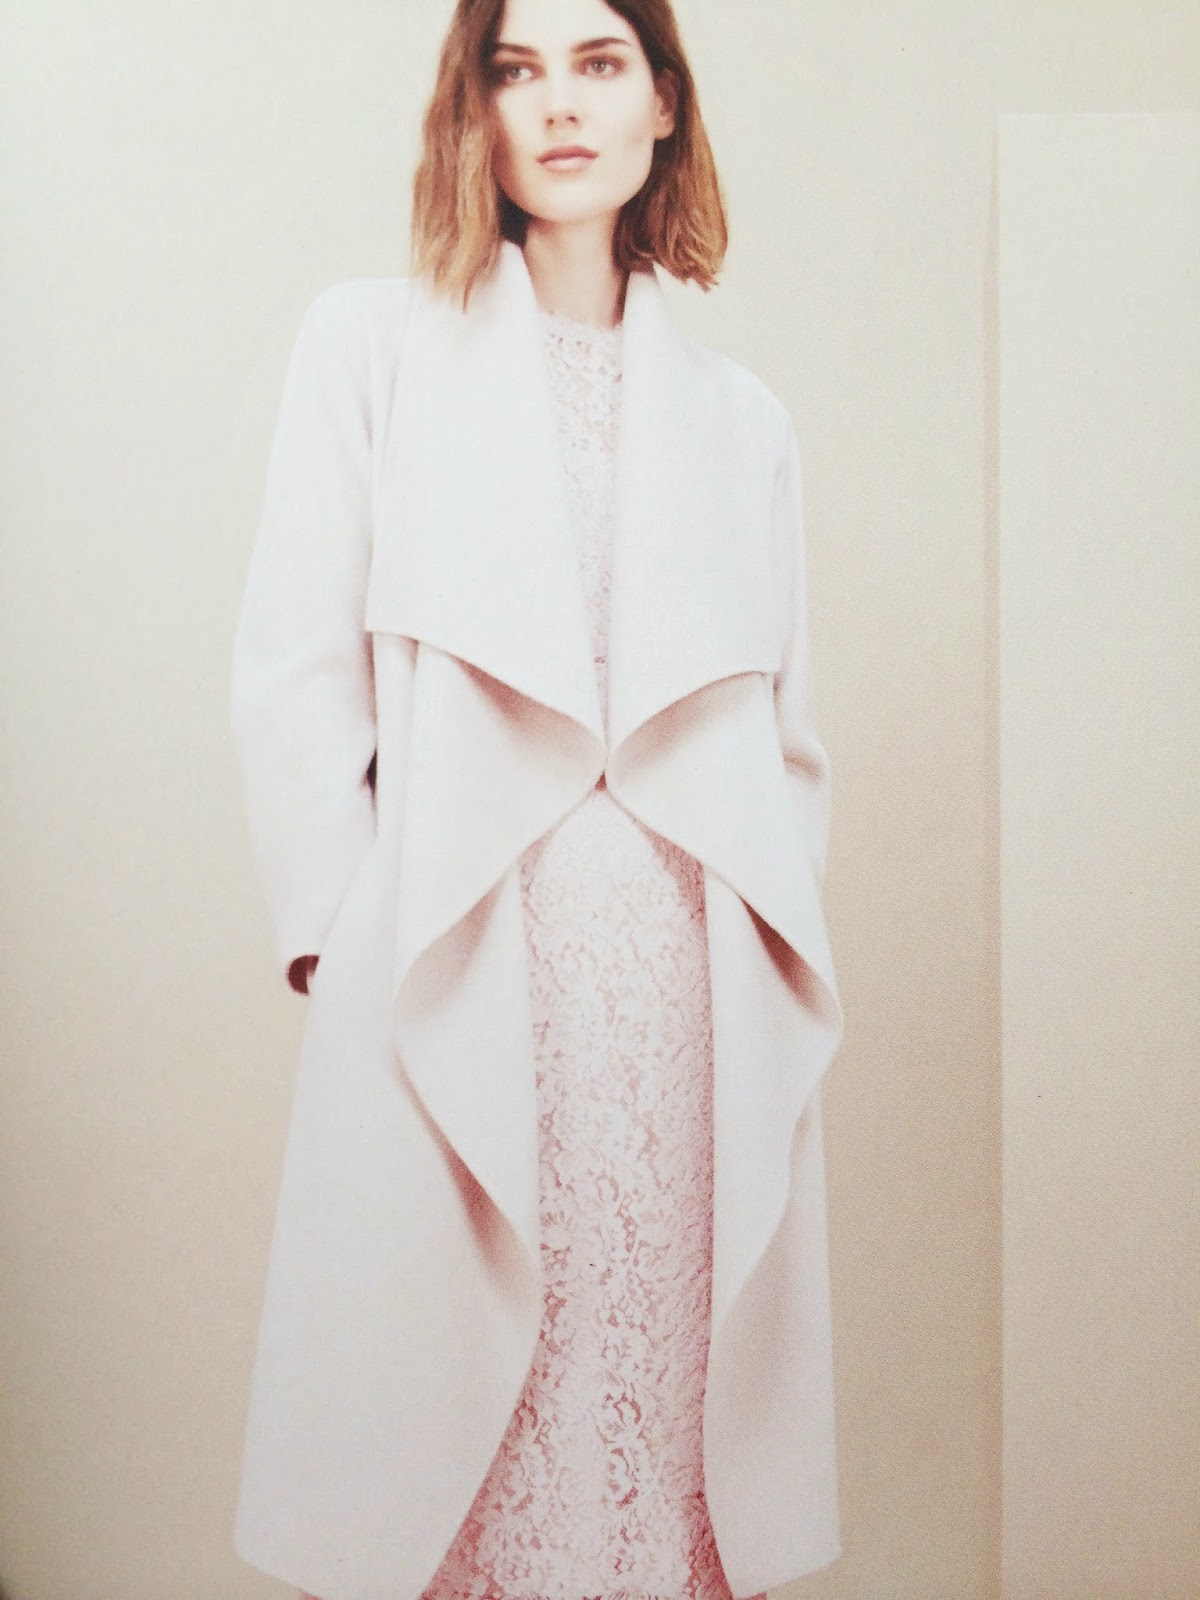 hobbs, hobbs vip, hobbs coat, hobbs press event, pink coat, pink waterfall coat